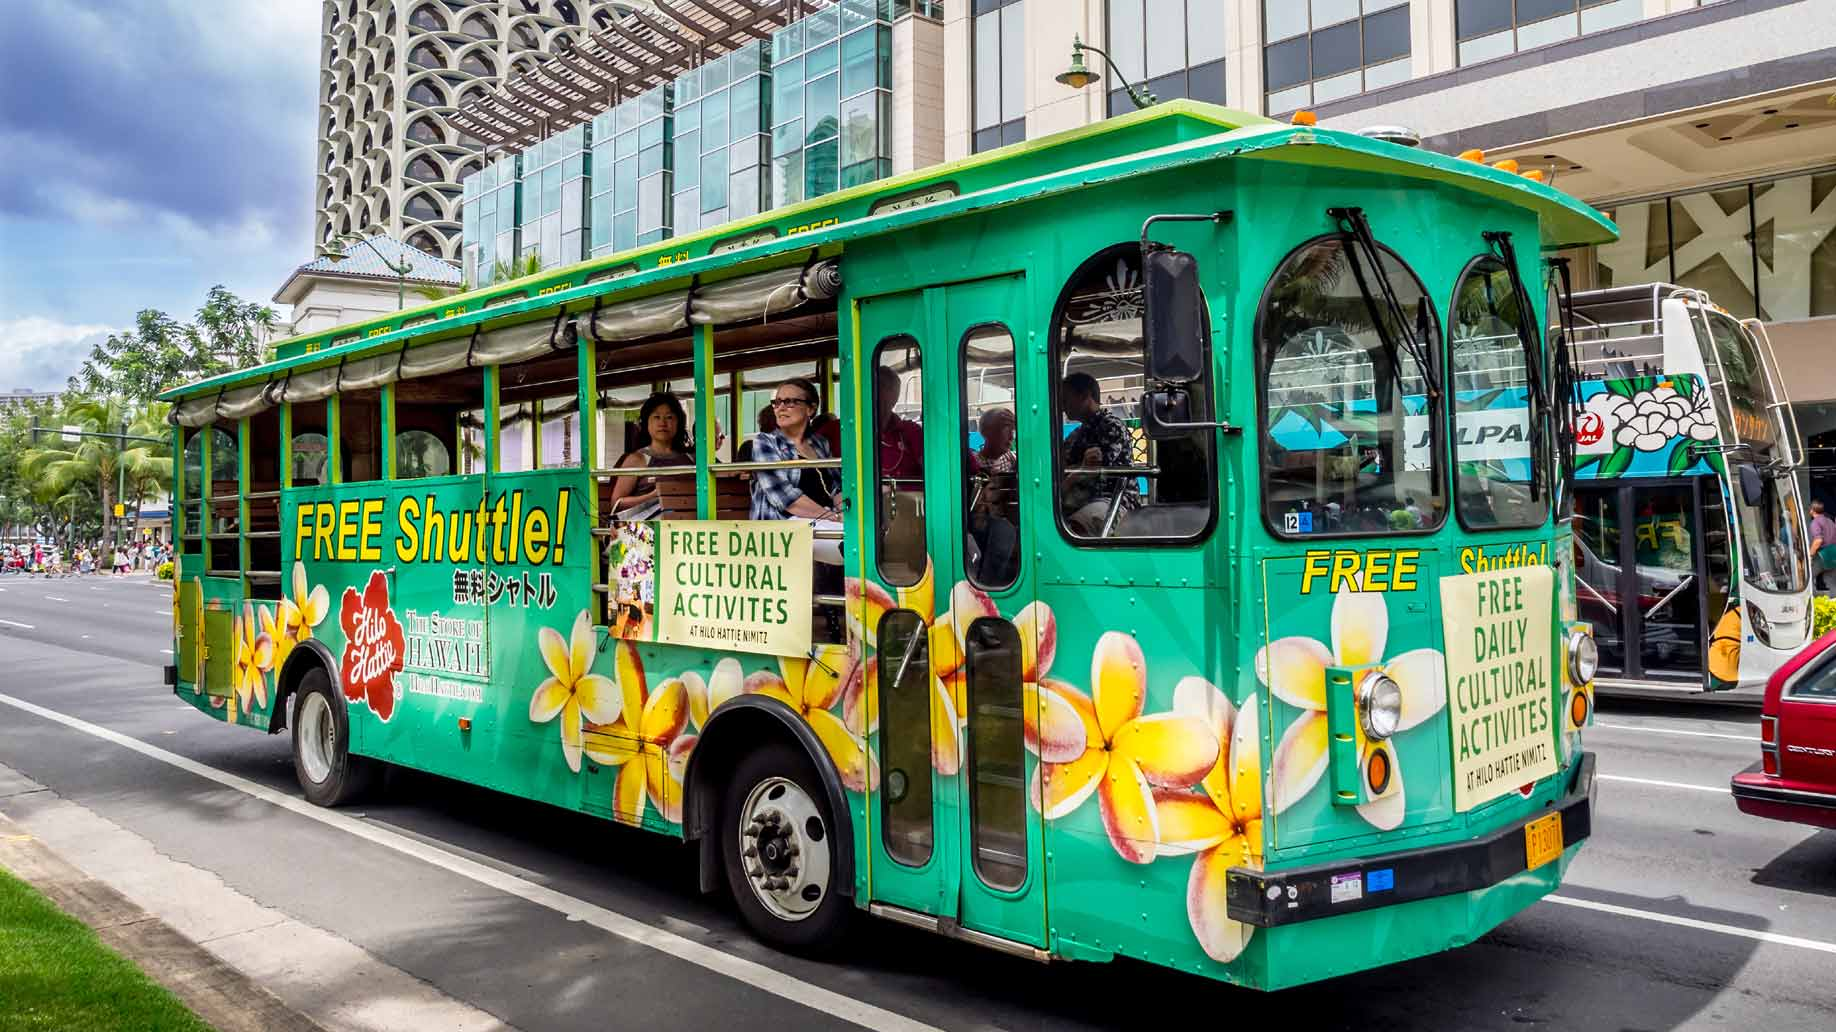 free shuttle bus, photo by Jeff Whyte